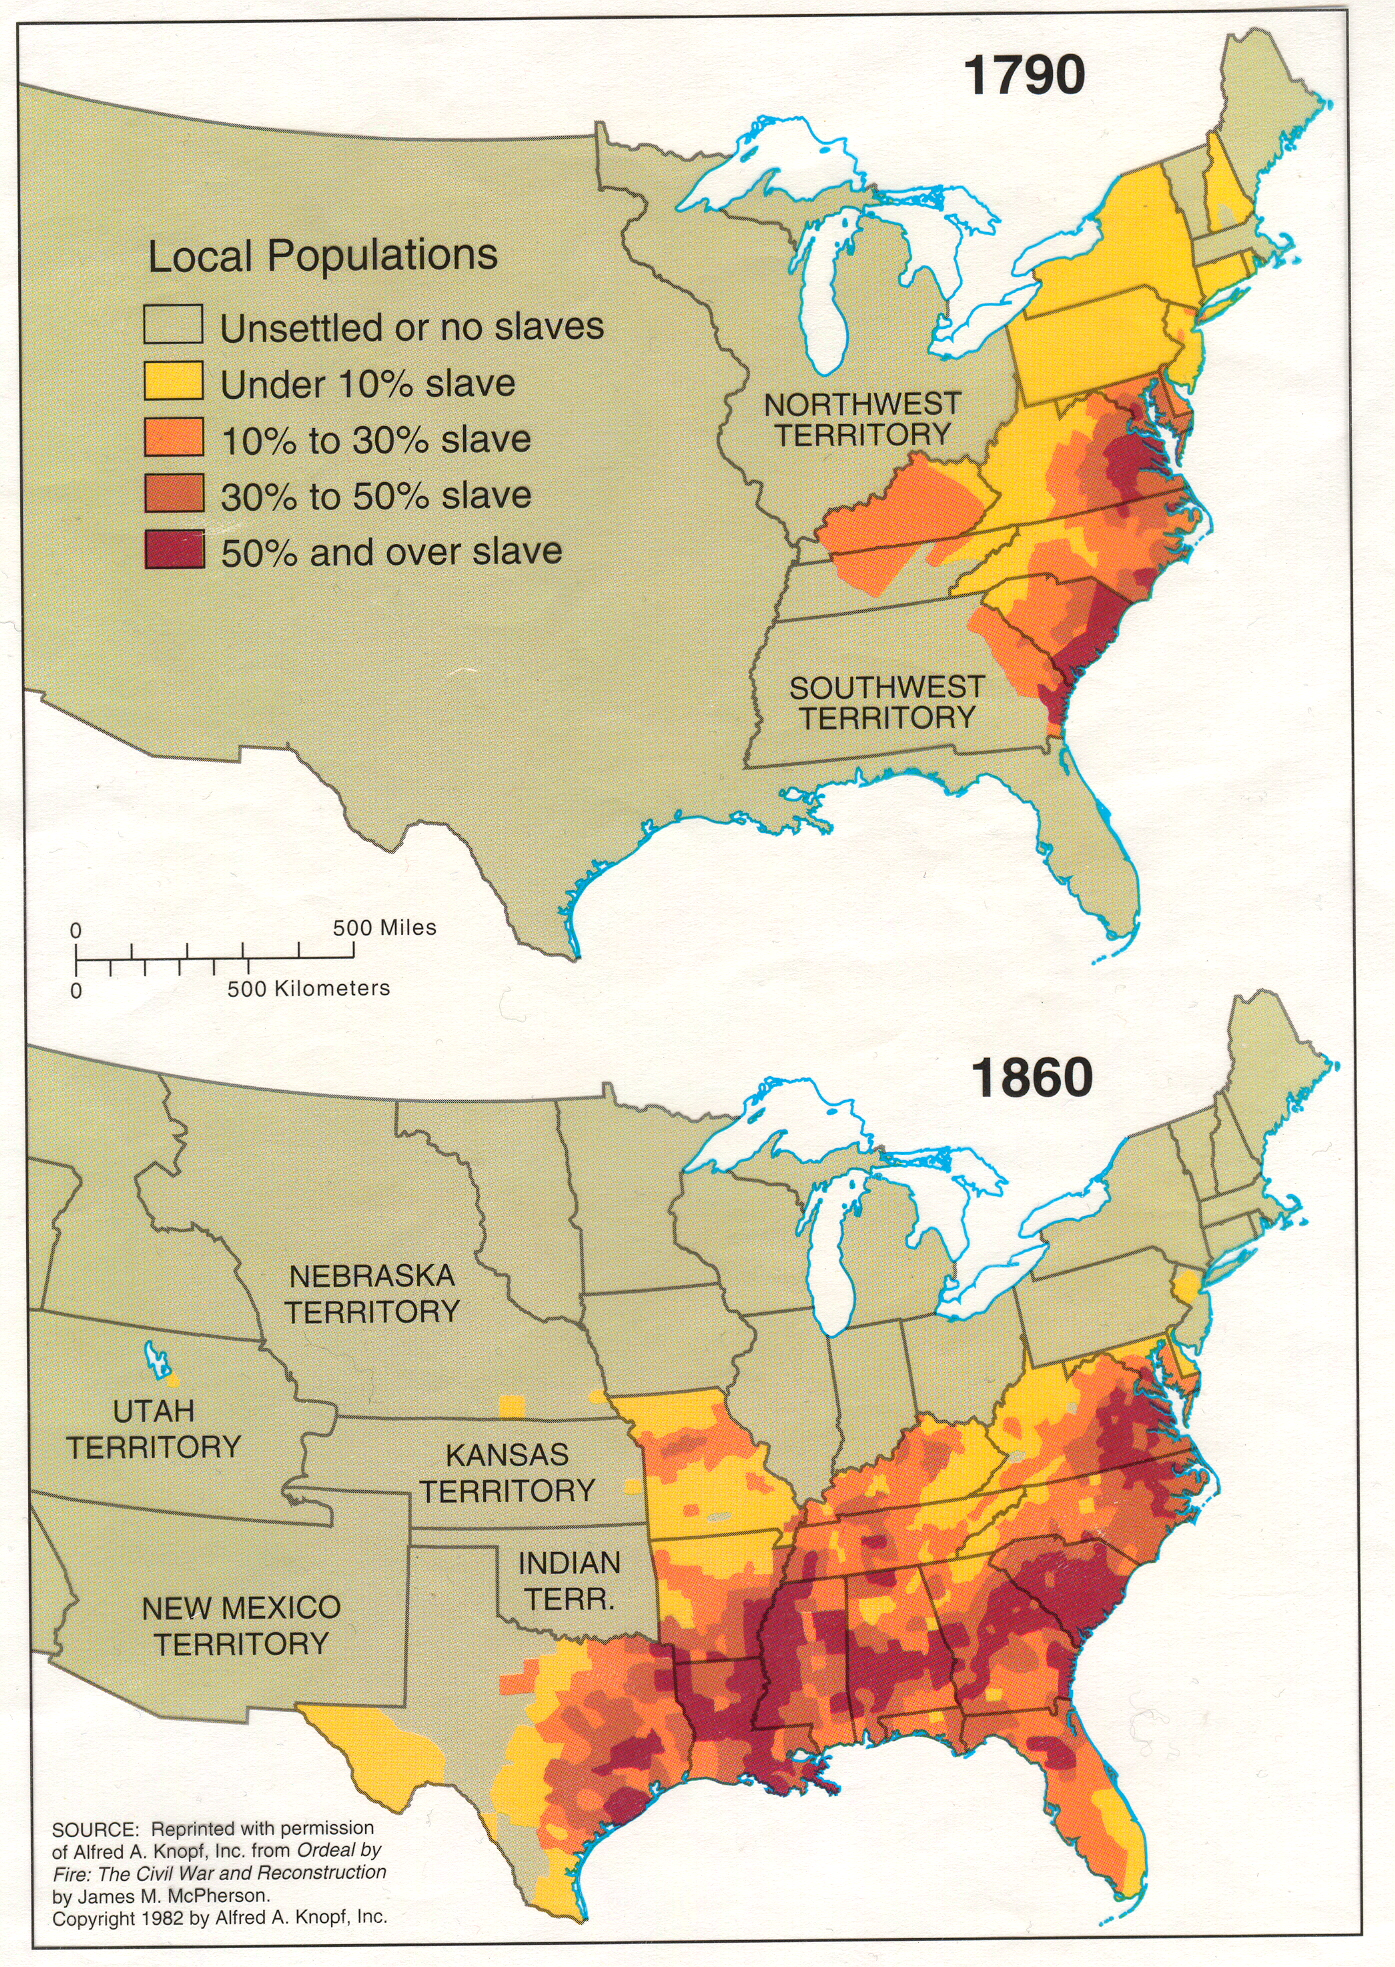 37 Maps That Explain The American Civil War Vox - Us-map-before-mexican-american-war